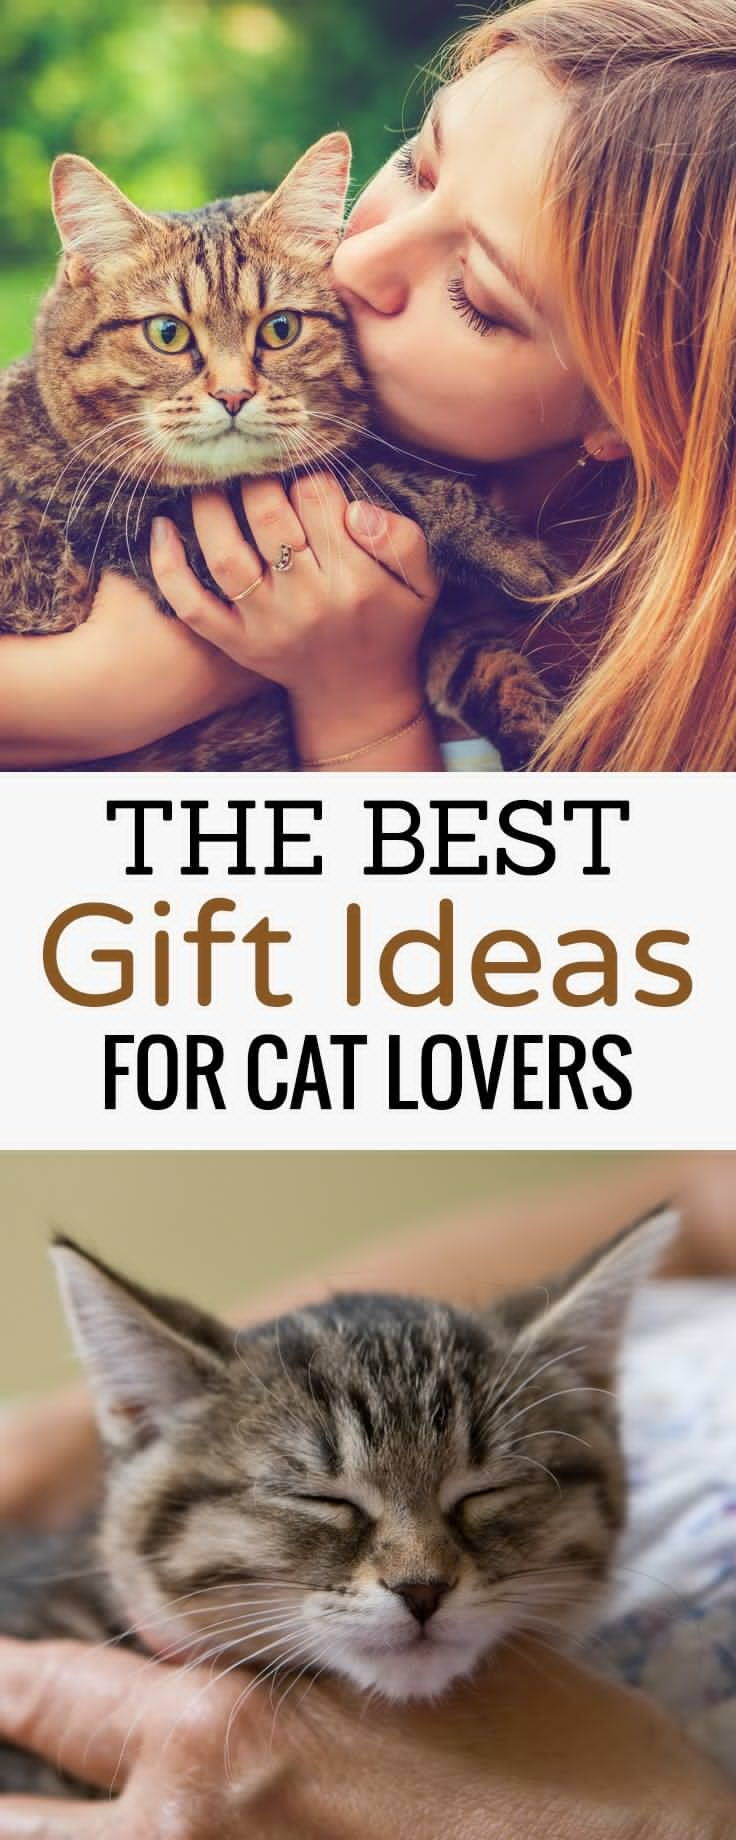 Here S A List Of Gift Ideas You Can Give To Your Cat Lover Friends Cat Lovers Cats Cat Lover Gifts